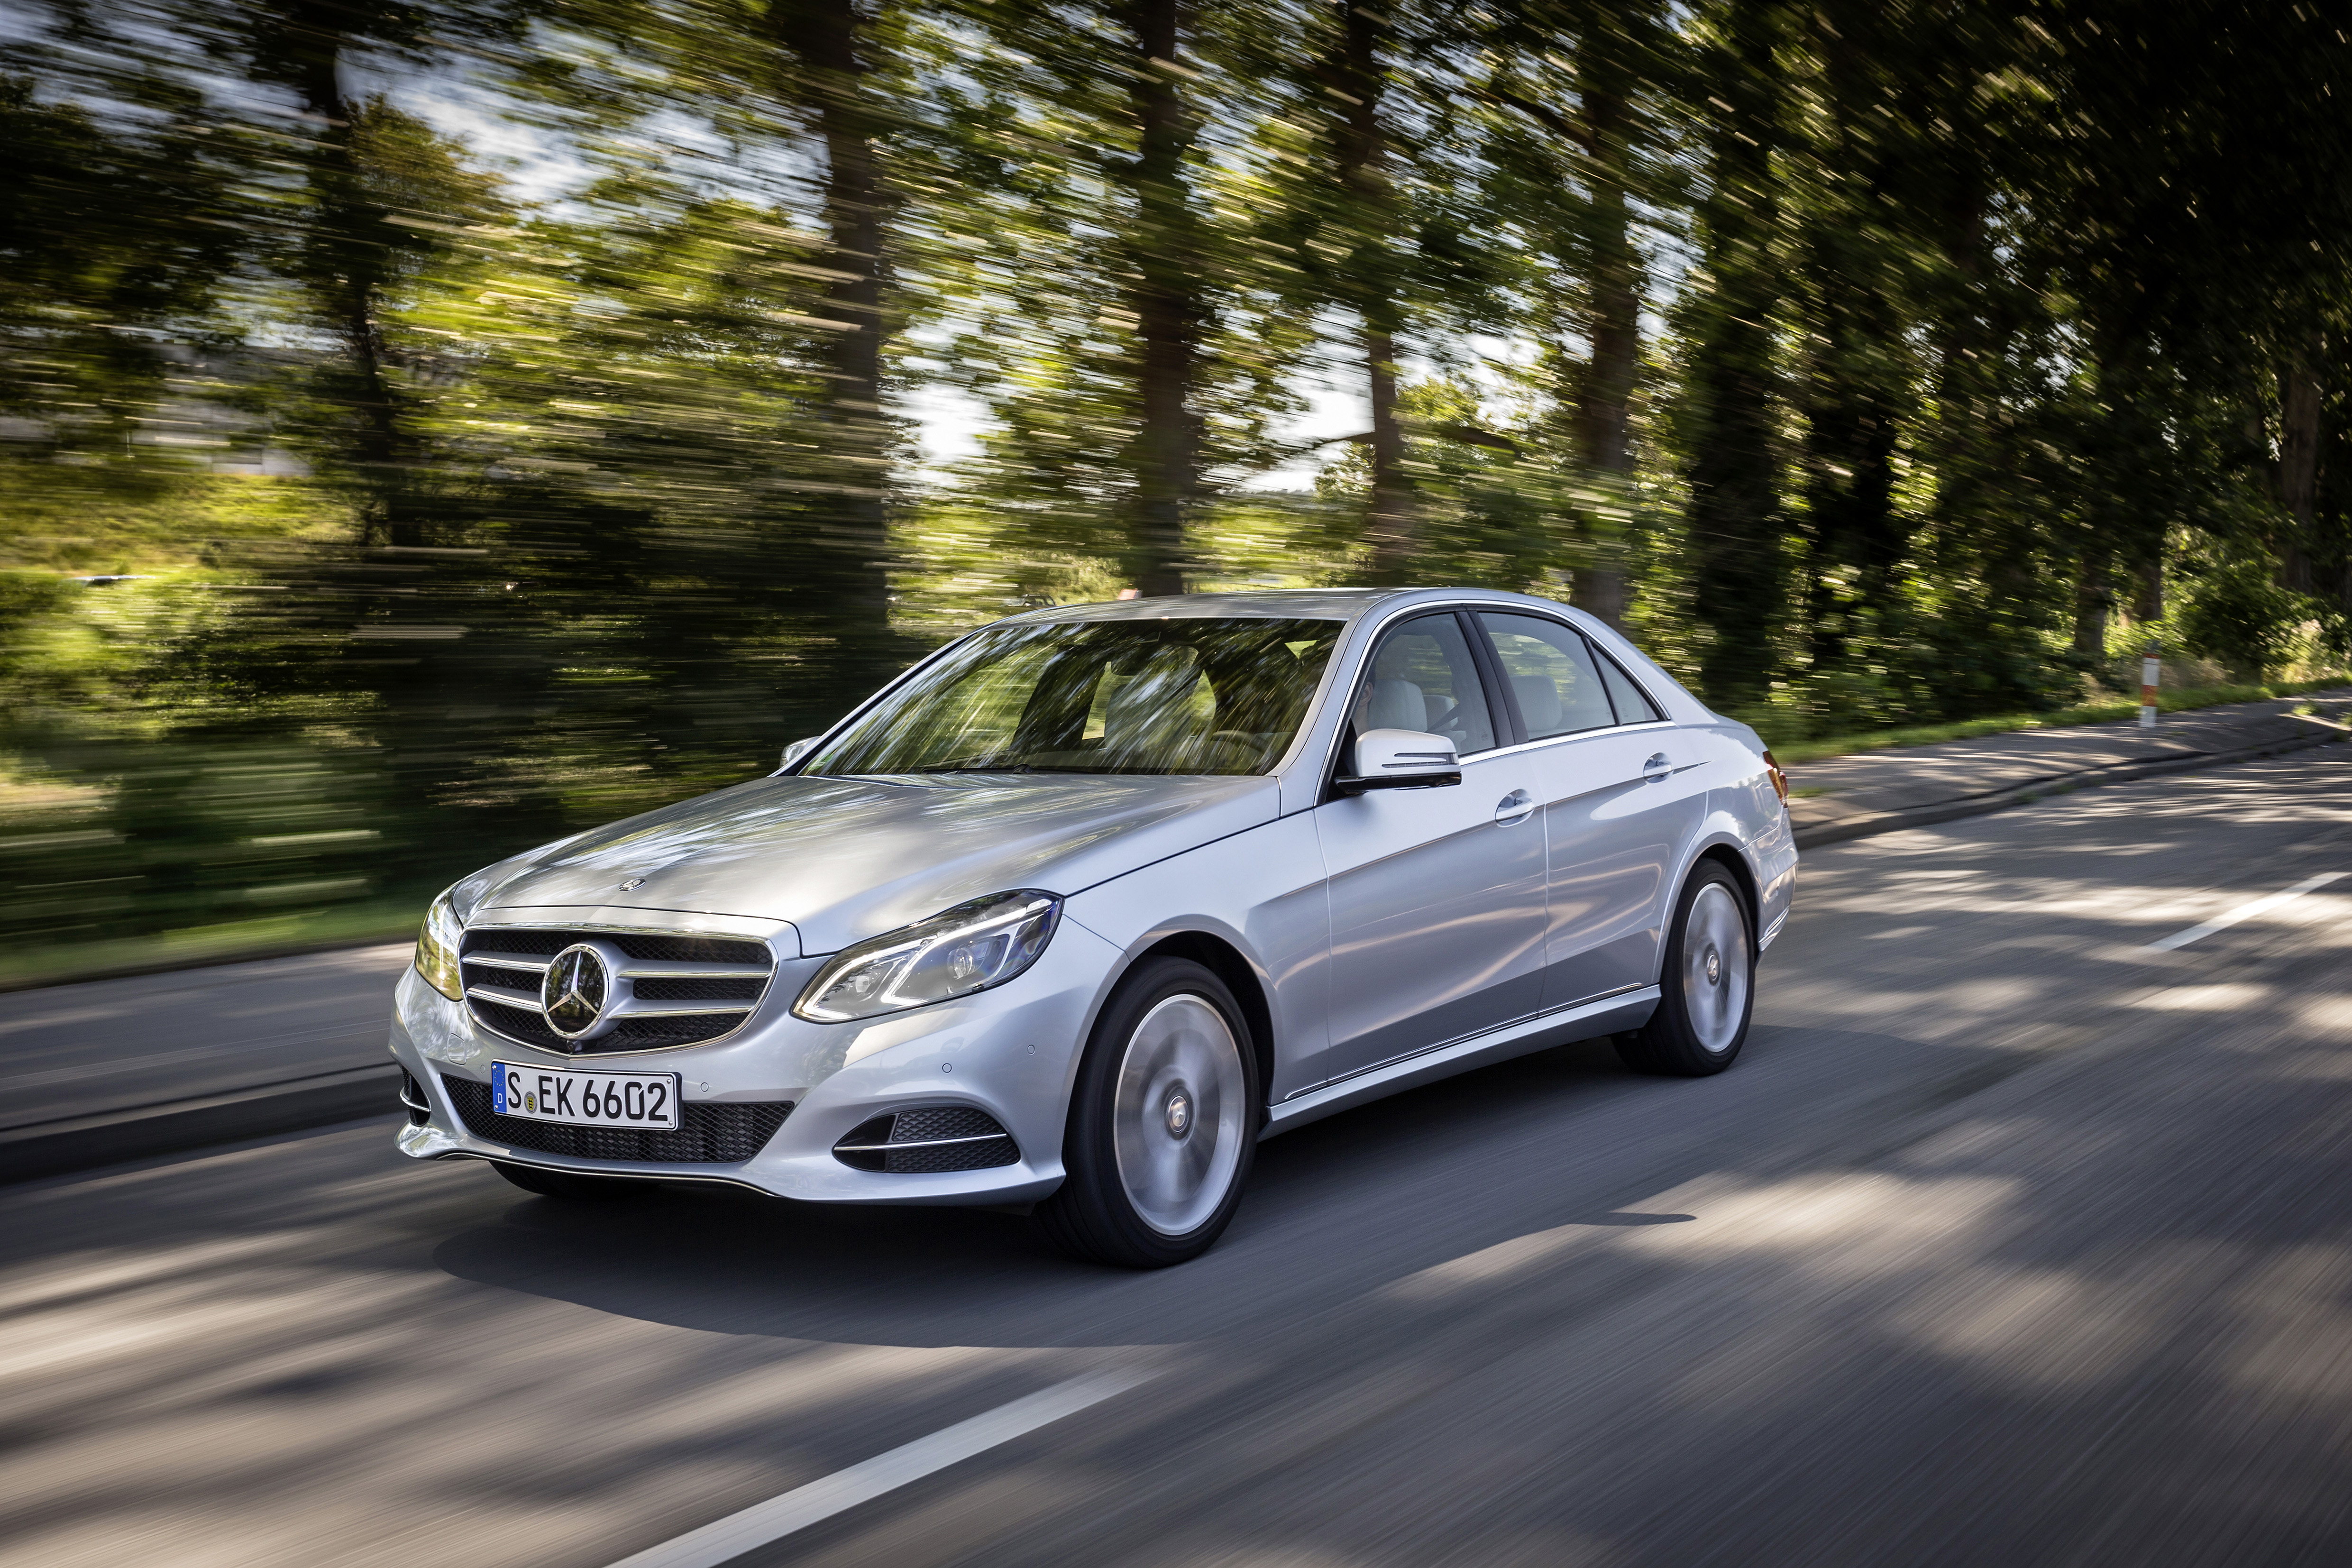 mercedes-benz wallpaper (Mercedes-Benz E-Class)